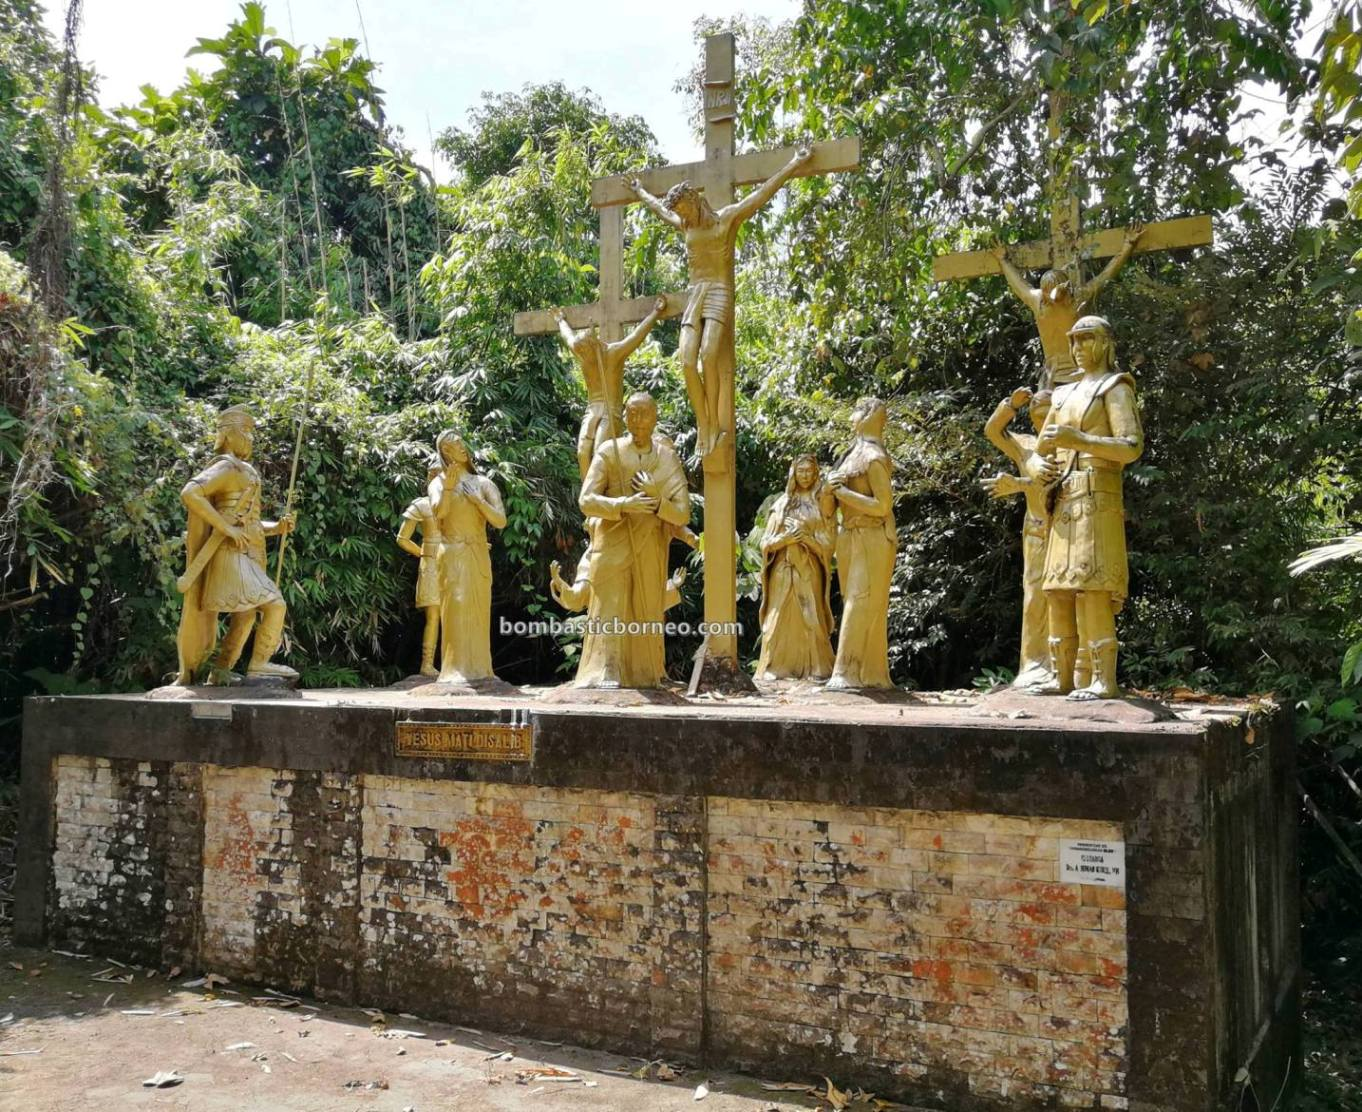 Gua Maria Bukit Kelam, Kelam hill, Virgin Mary Grotto, katolik, adventure, Borneo, backpackers, Sintang, Indonesia, Kalimantan Barat, tourist attraction, Tourism, Travel guide, Cross Border, 新钉旅游景点,